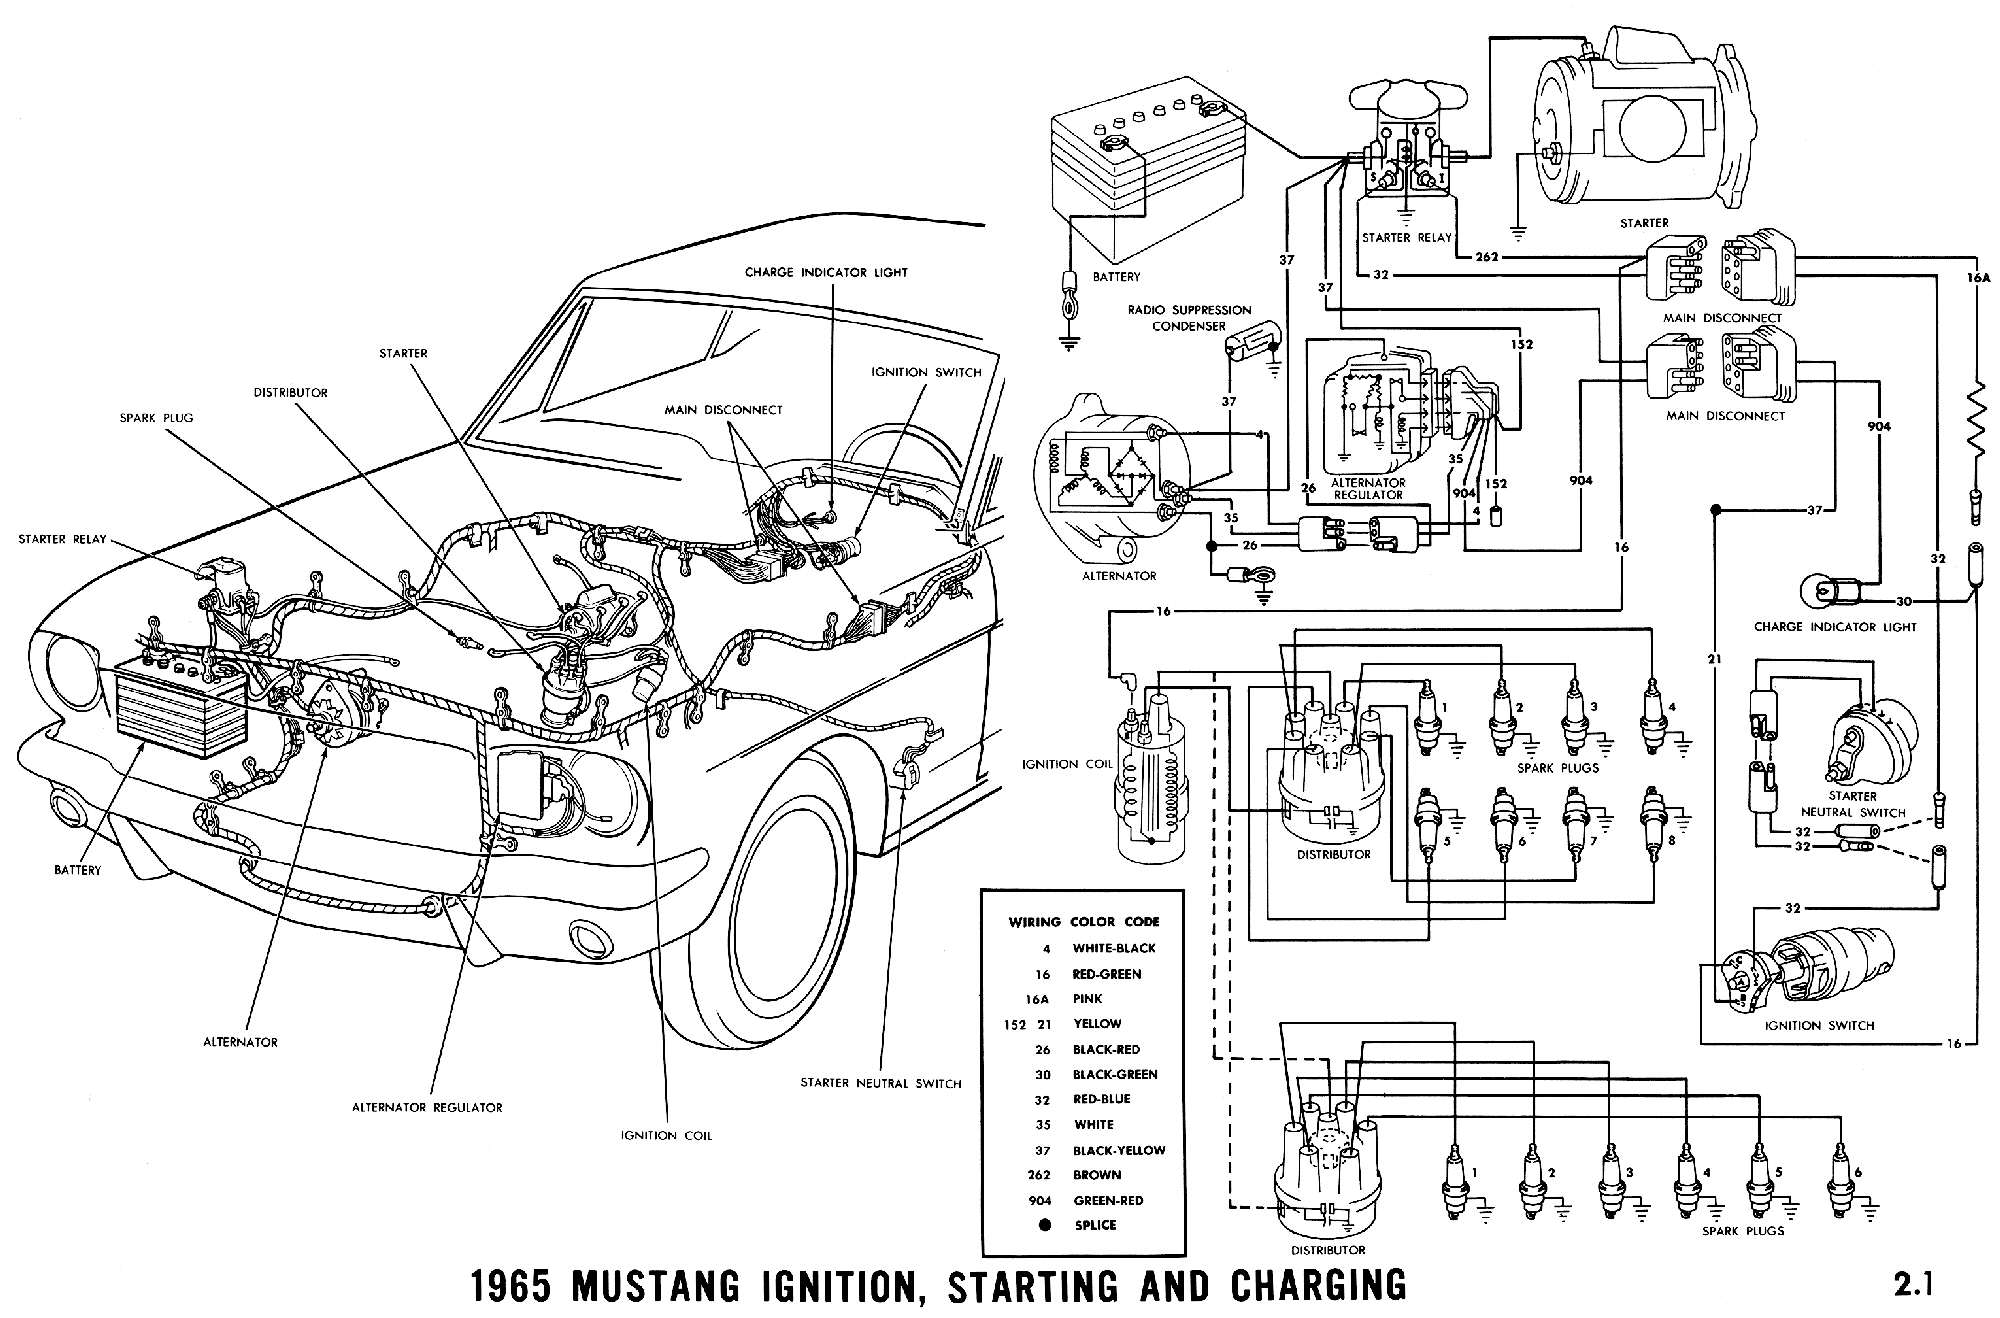 wiring diagram lights with 1965 Mustang Wiring Diagrams on Wire Break Sensor Alarm together with How Exactly Does A 3 Way Switch Work in addition Wiring Diagram 1977 Jeep Cj5 Free Online additionally Light Activated Relay With 555 Ic also Electricindex.